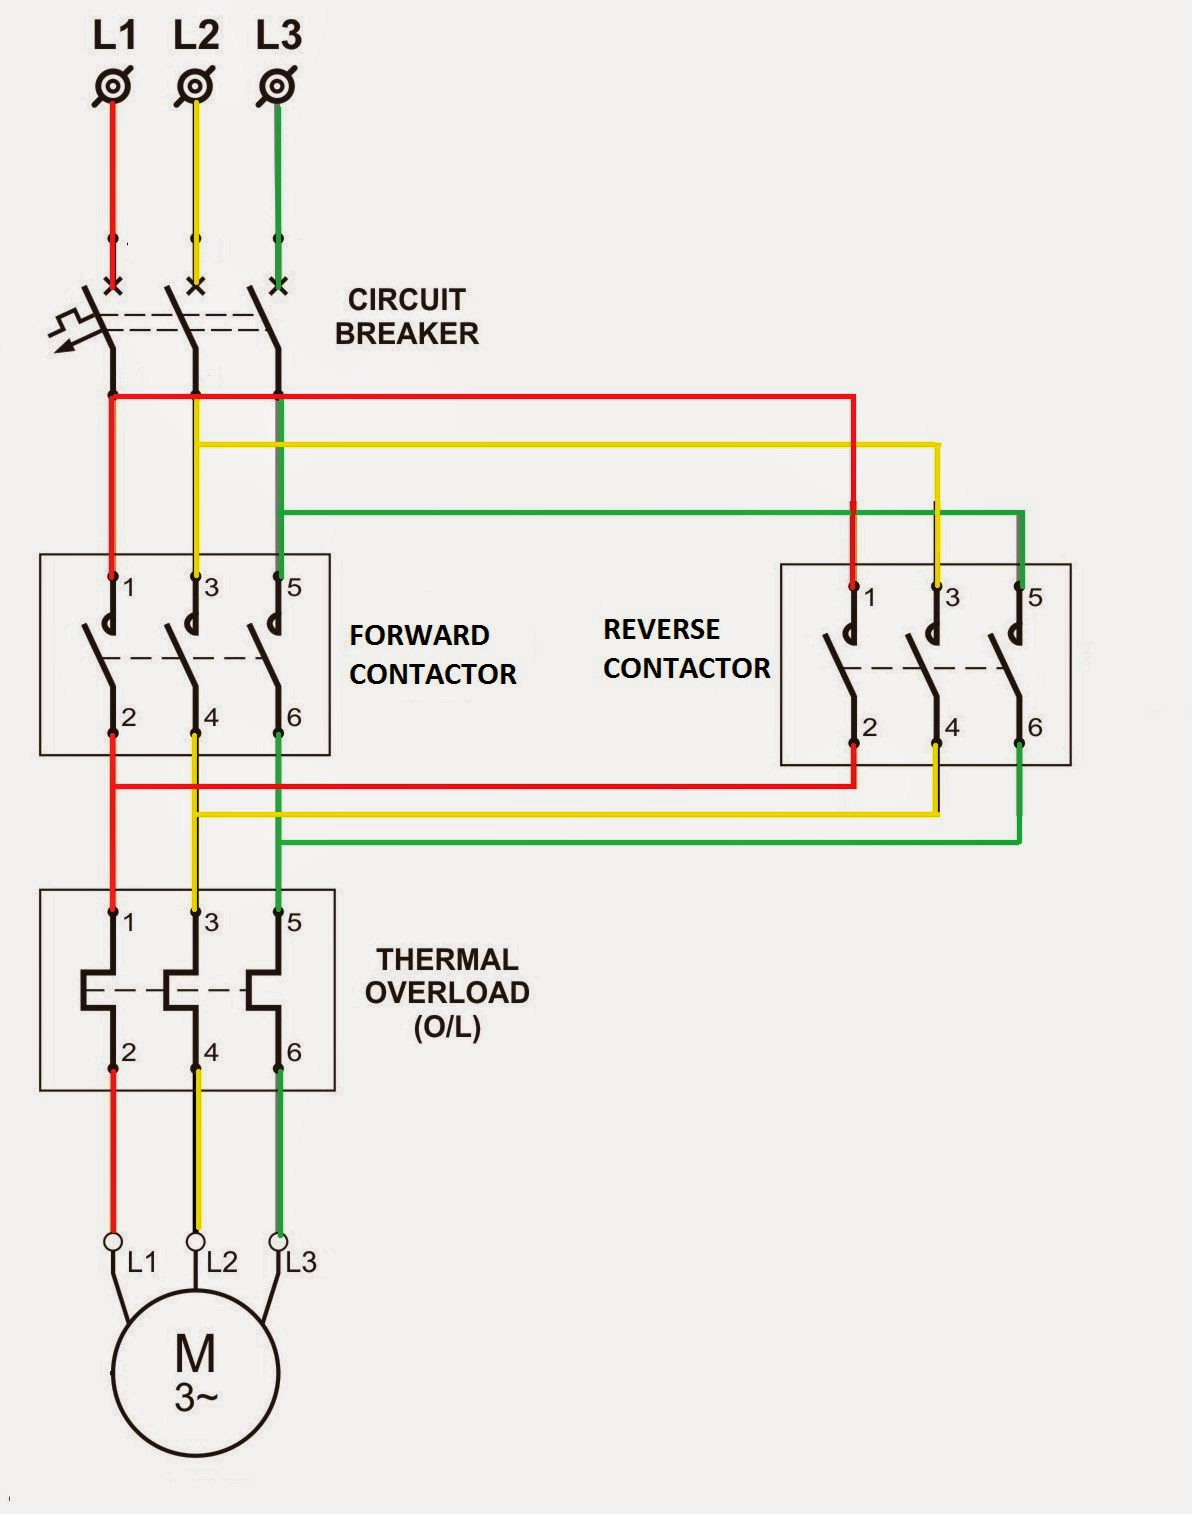 Electrical Standards Overload relay working principle and